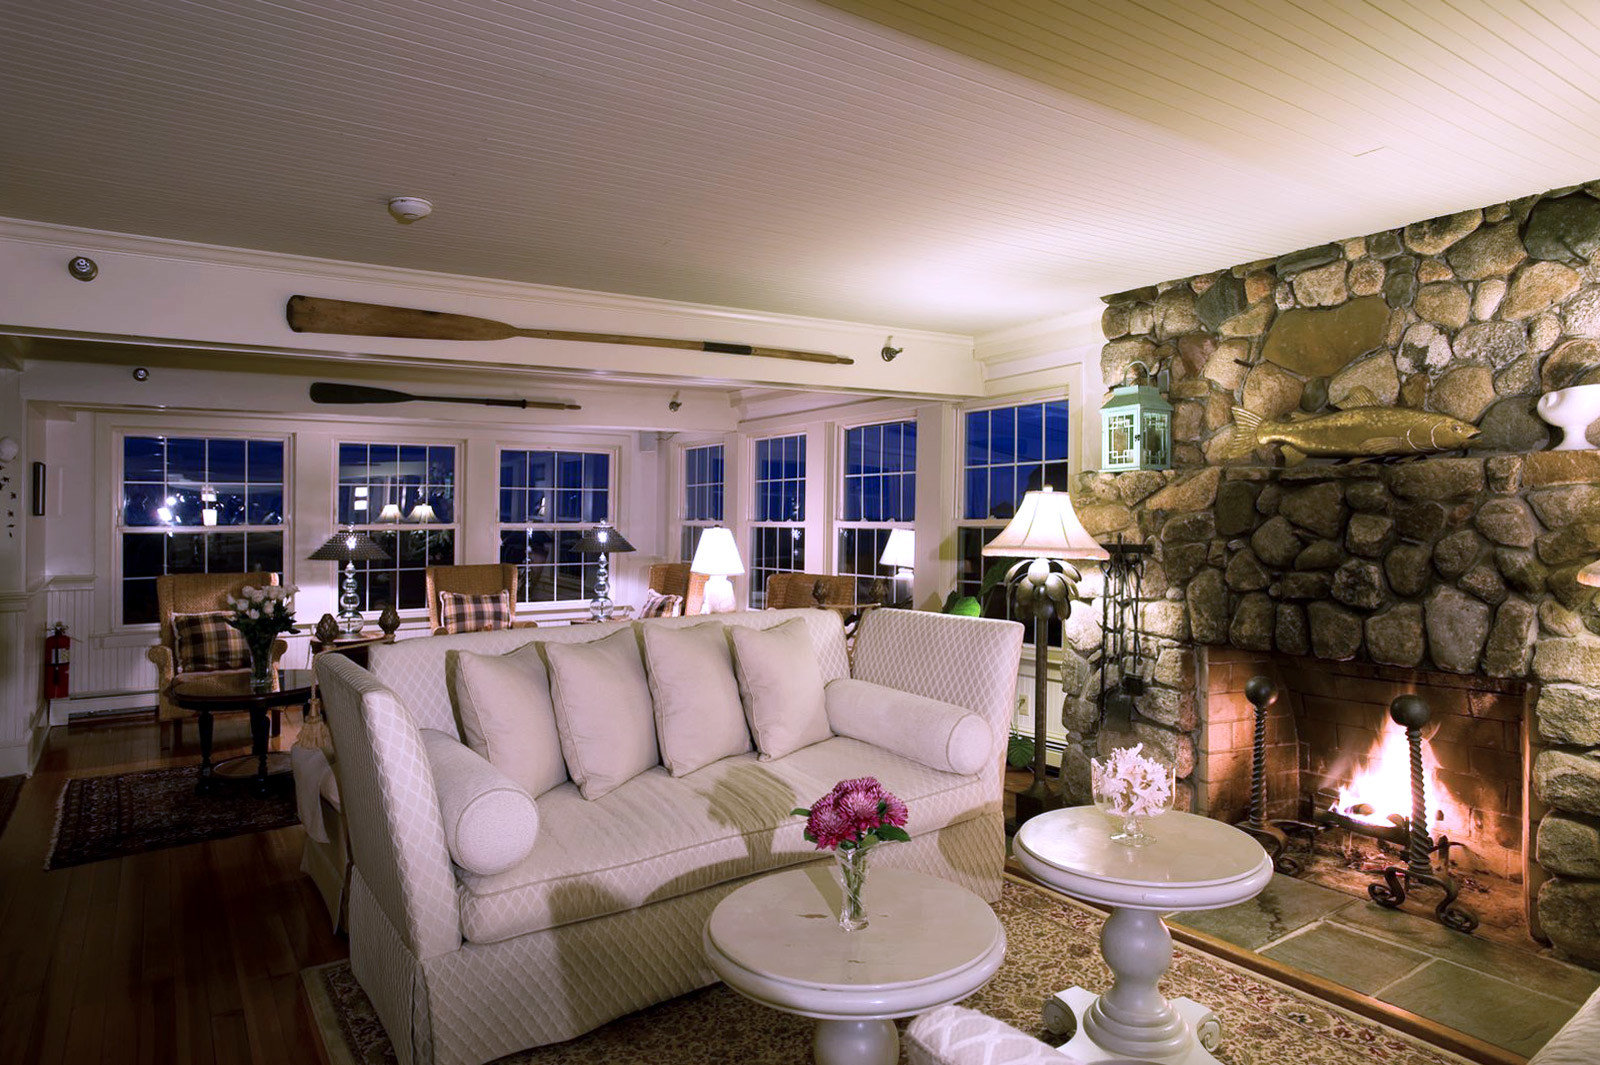 Country Fireplace Inn Lounge living room property home condominium mansion Lobby Villa